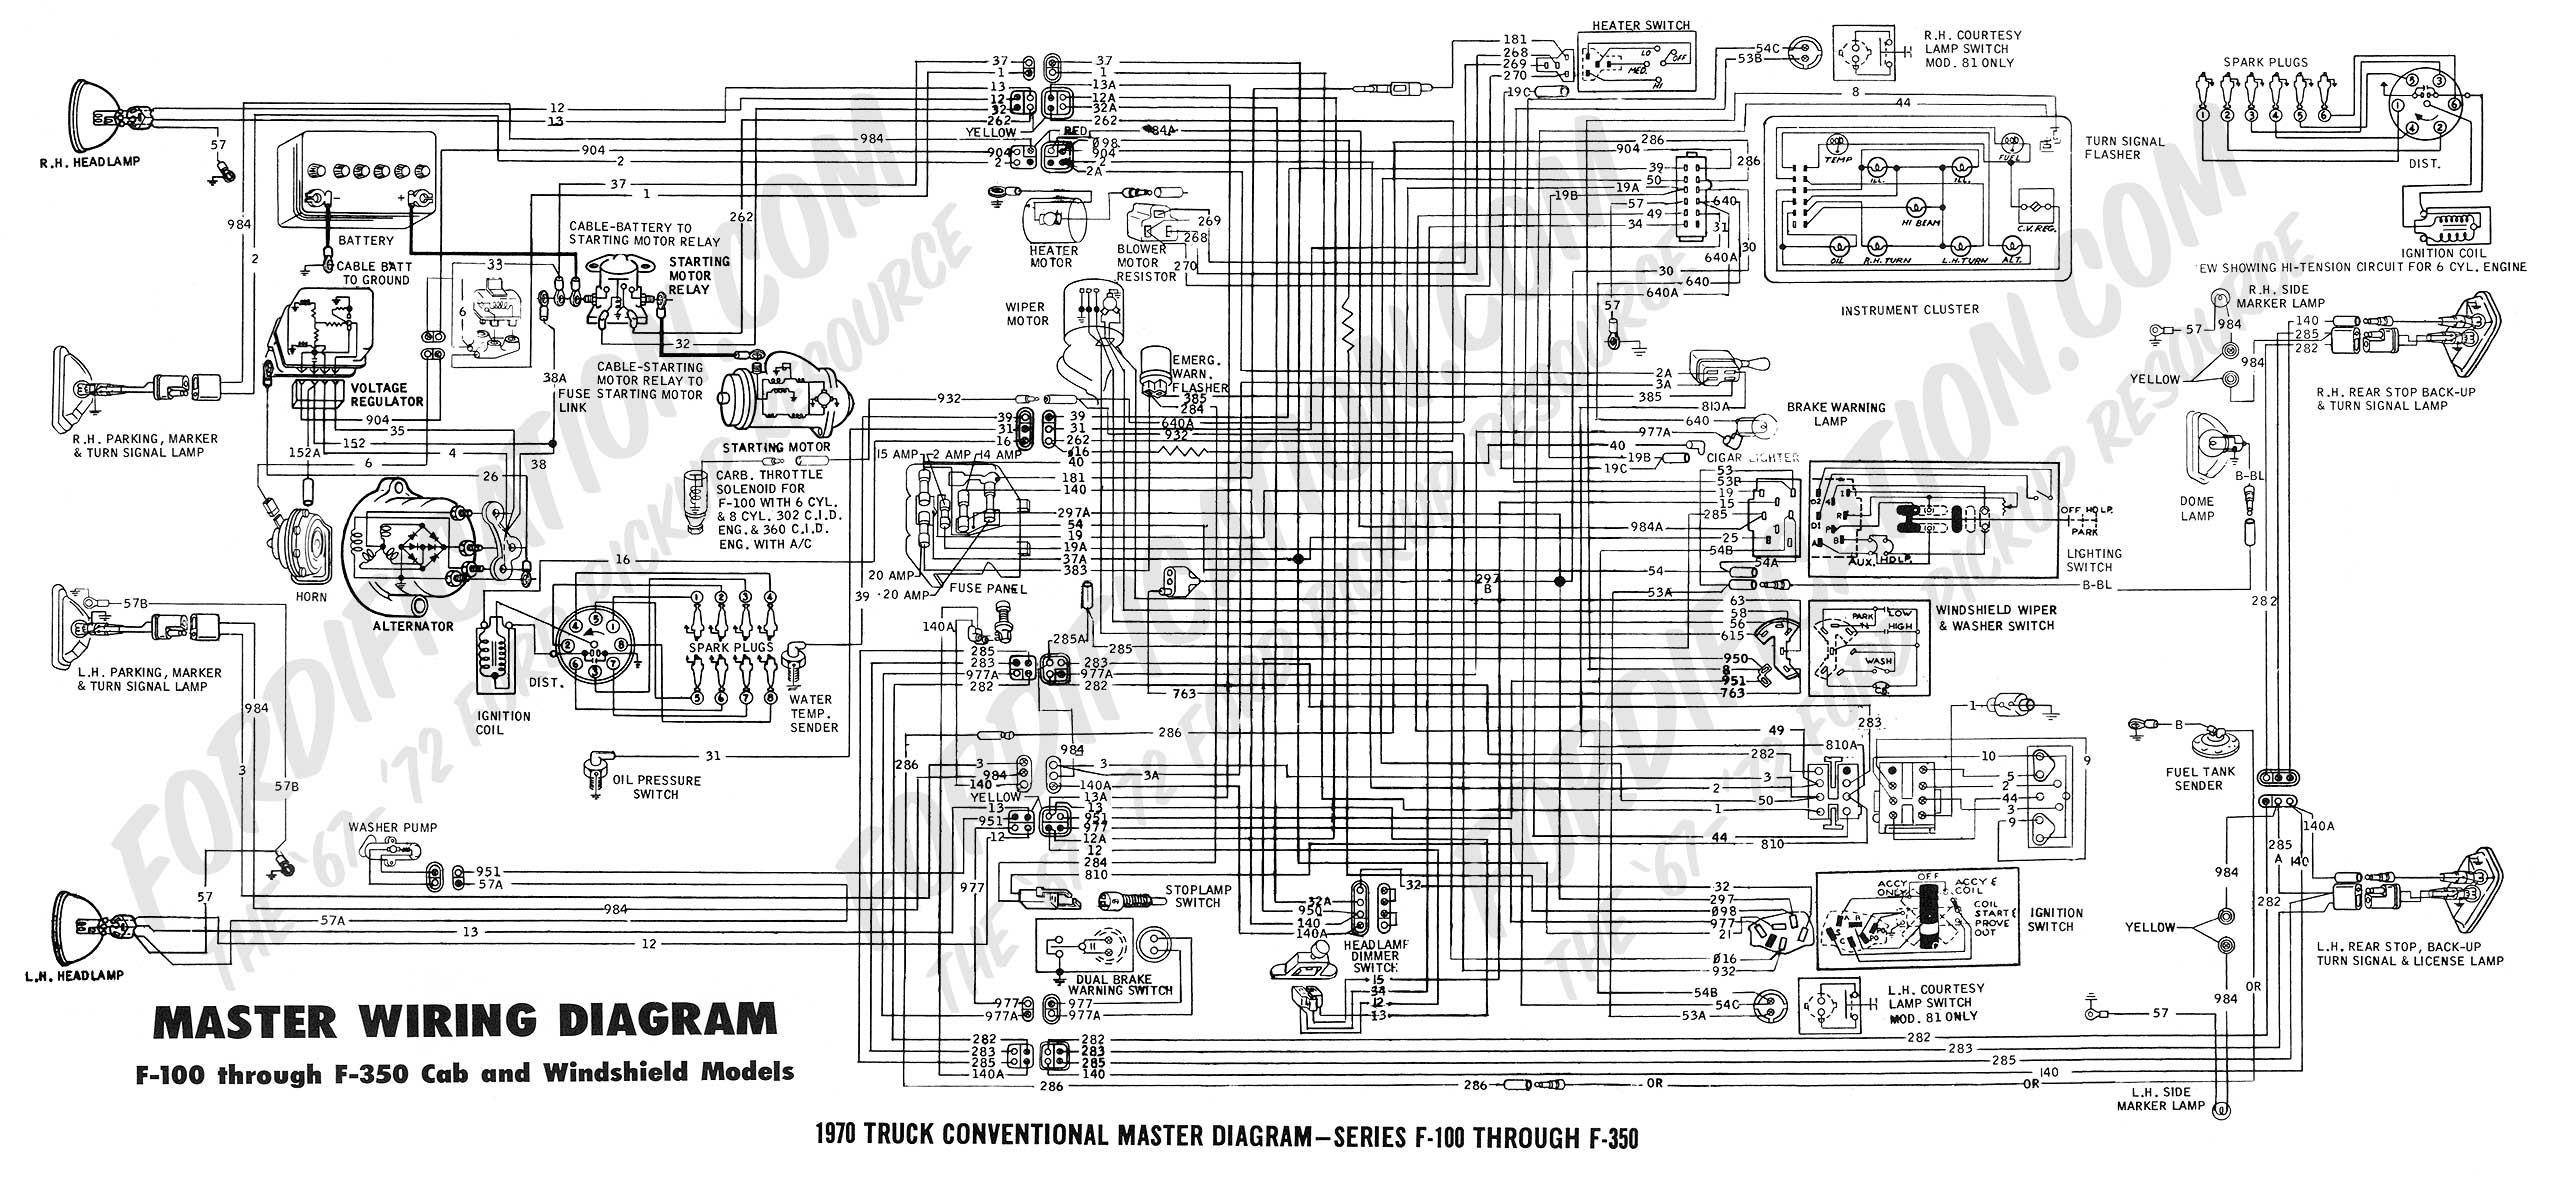 wiring diagram 70_master ford truck technical drawings and schematics section h wiring old ford wiring harness at arjmand.co